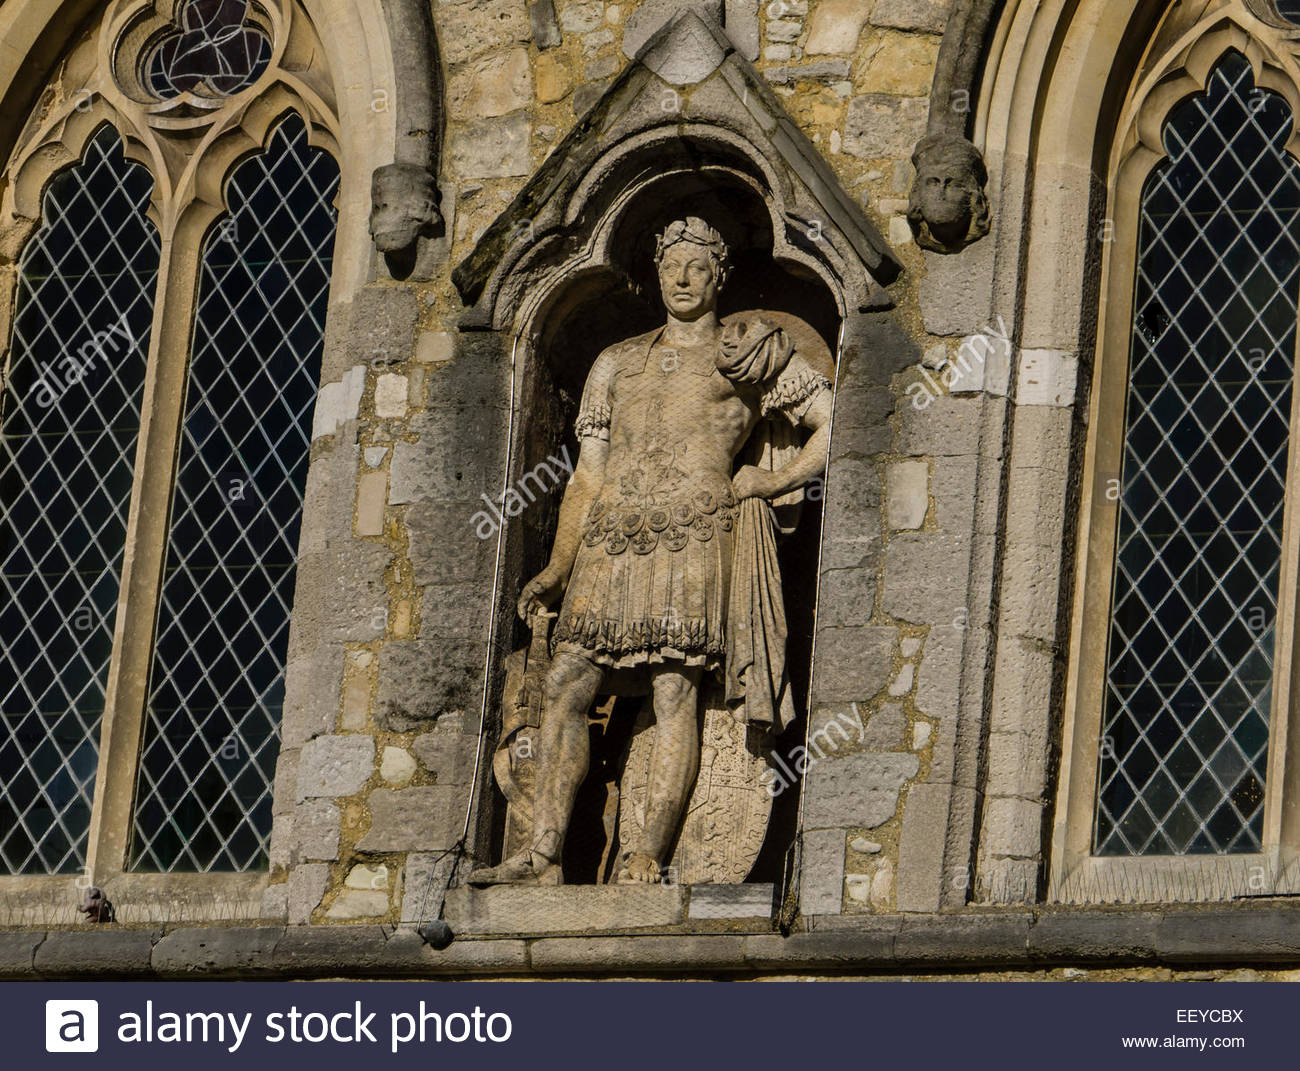 Statue of King George III in Roman dress above the,Bargate Southampton Hampshire England UK Stock Photo